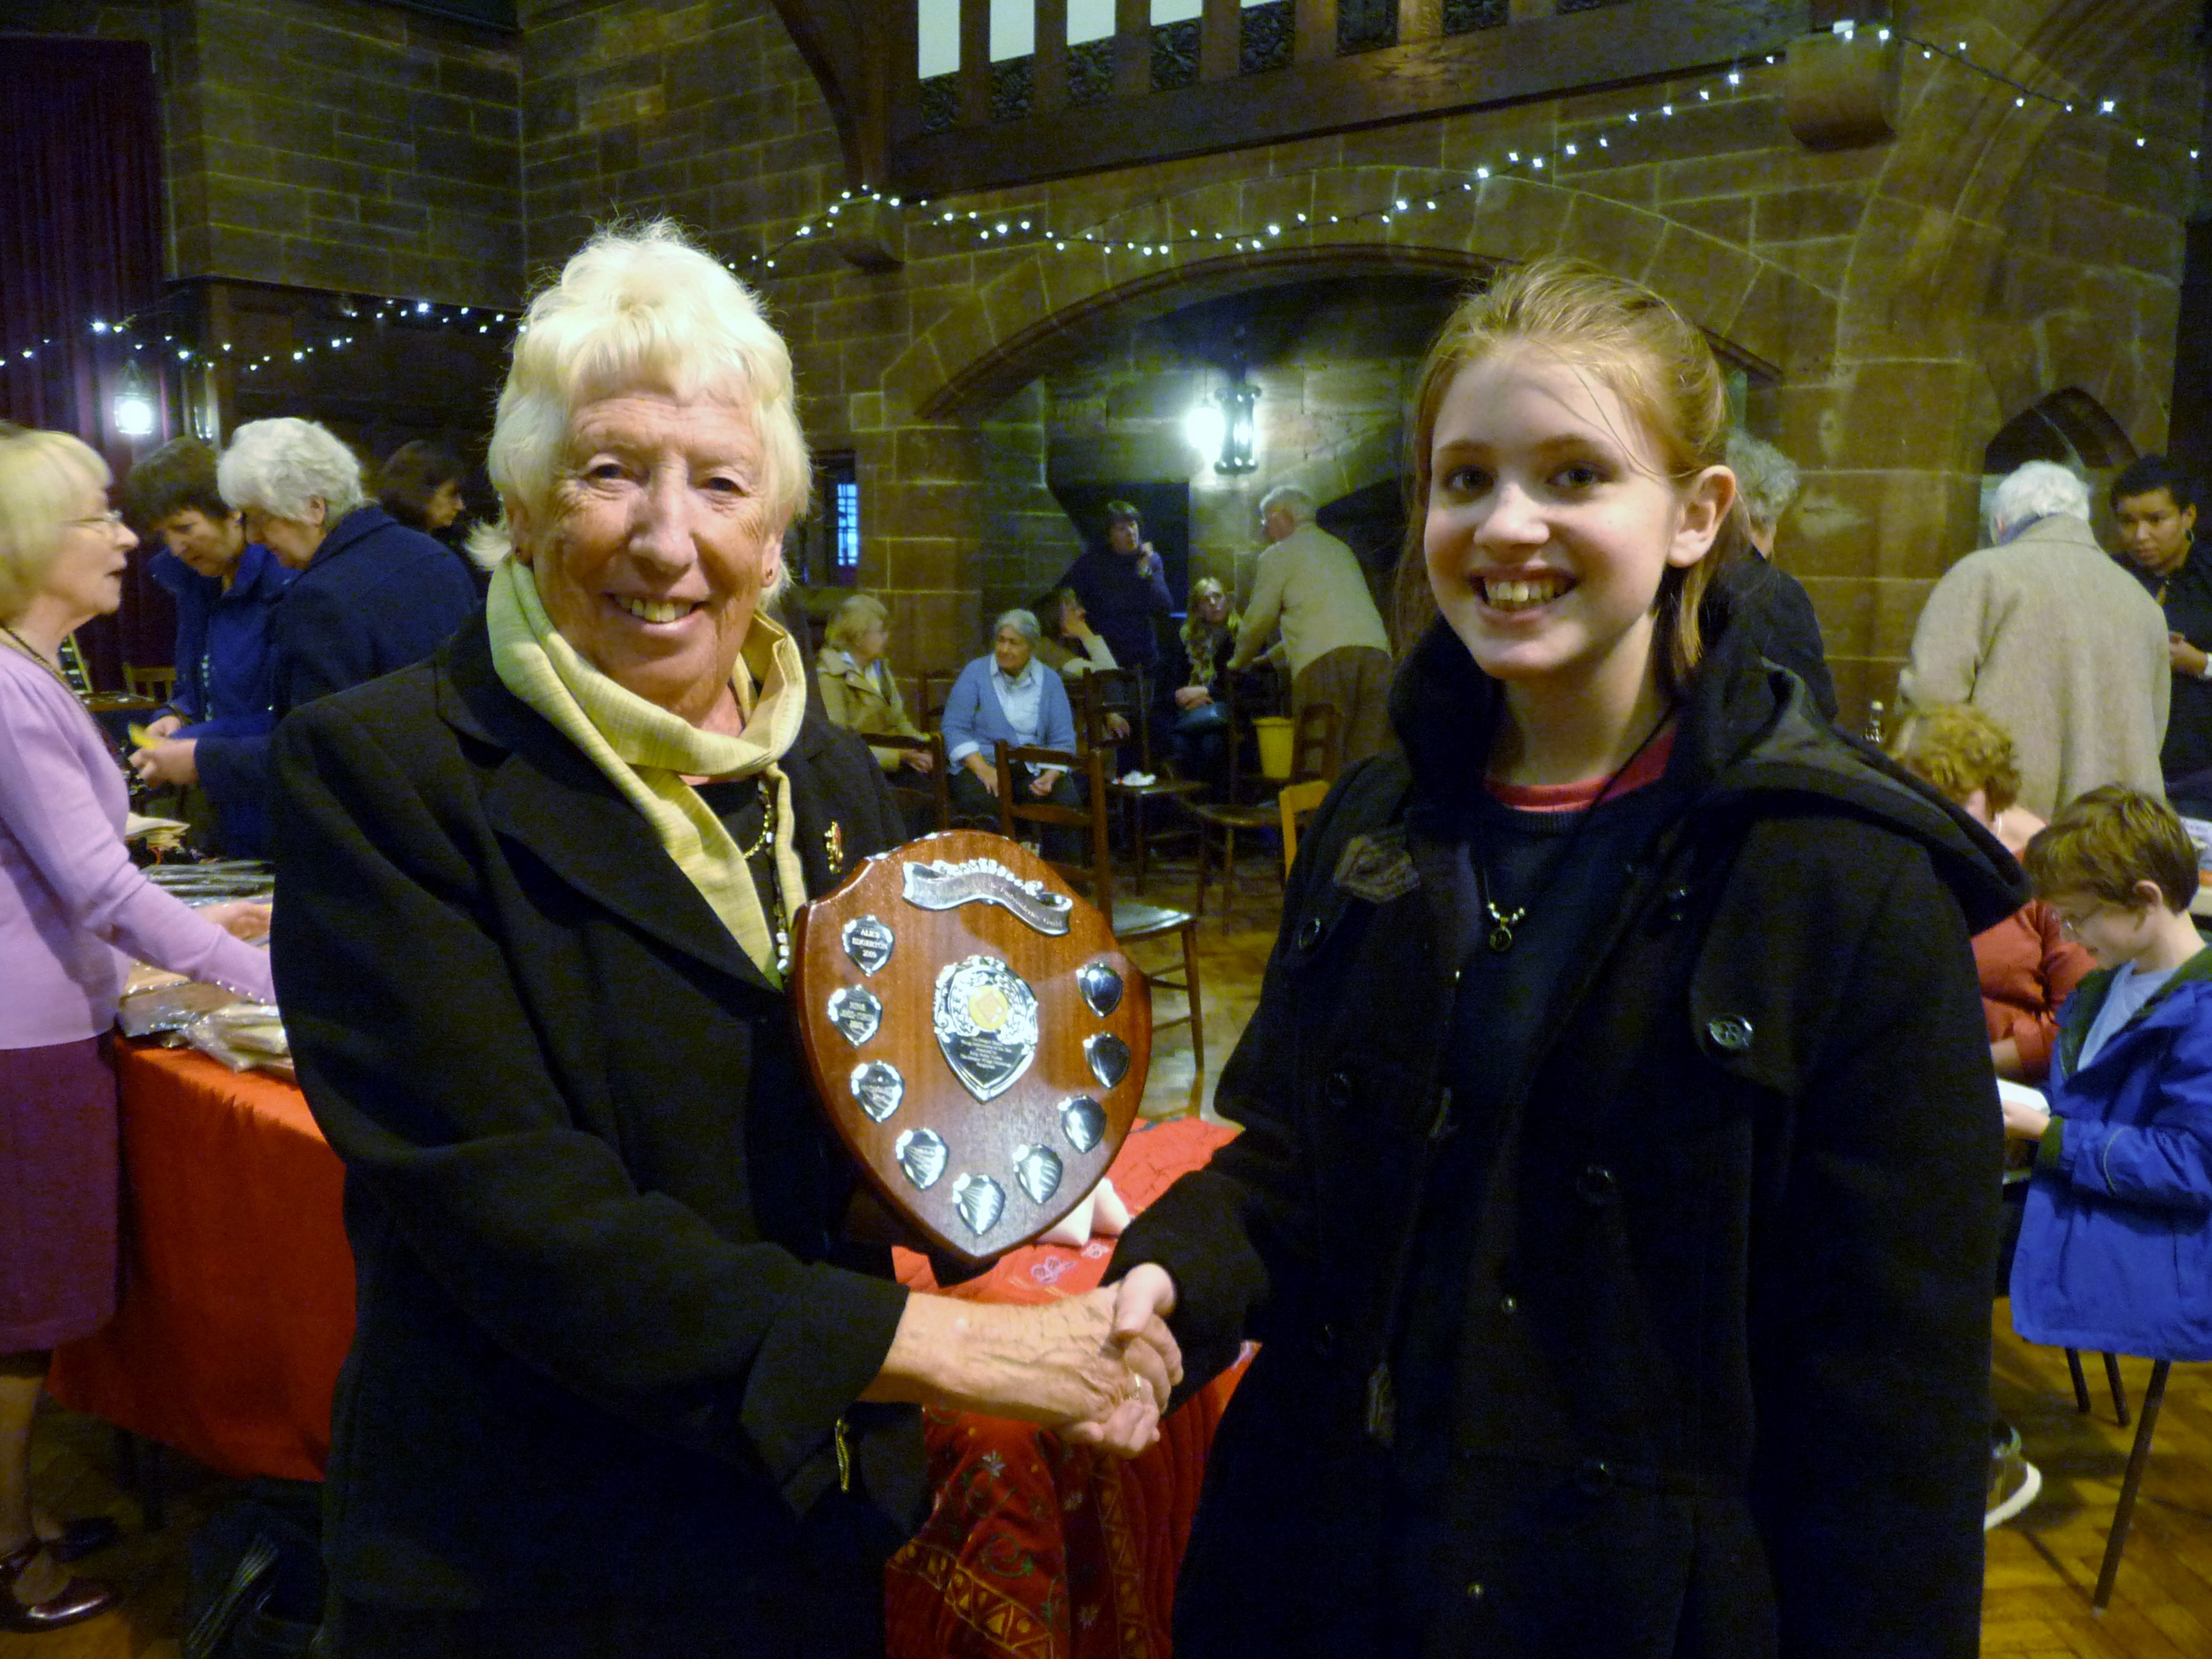 Maisie is receiving the Sreepur Shield for Merseyside Young Embroiderer of the Year 2013